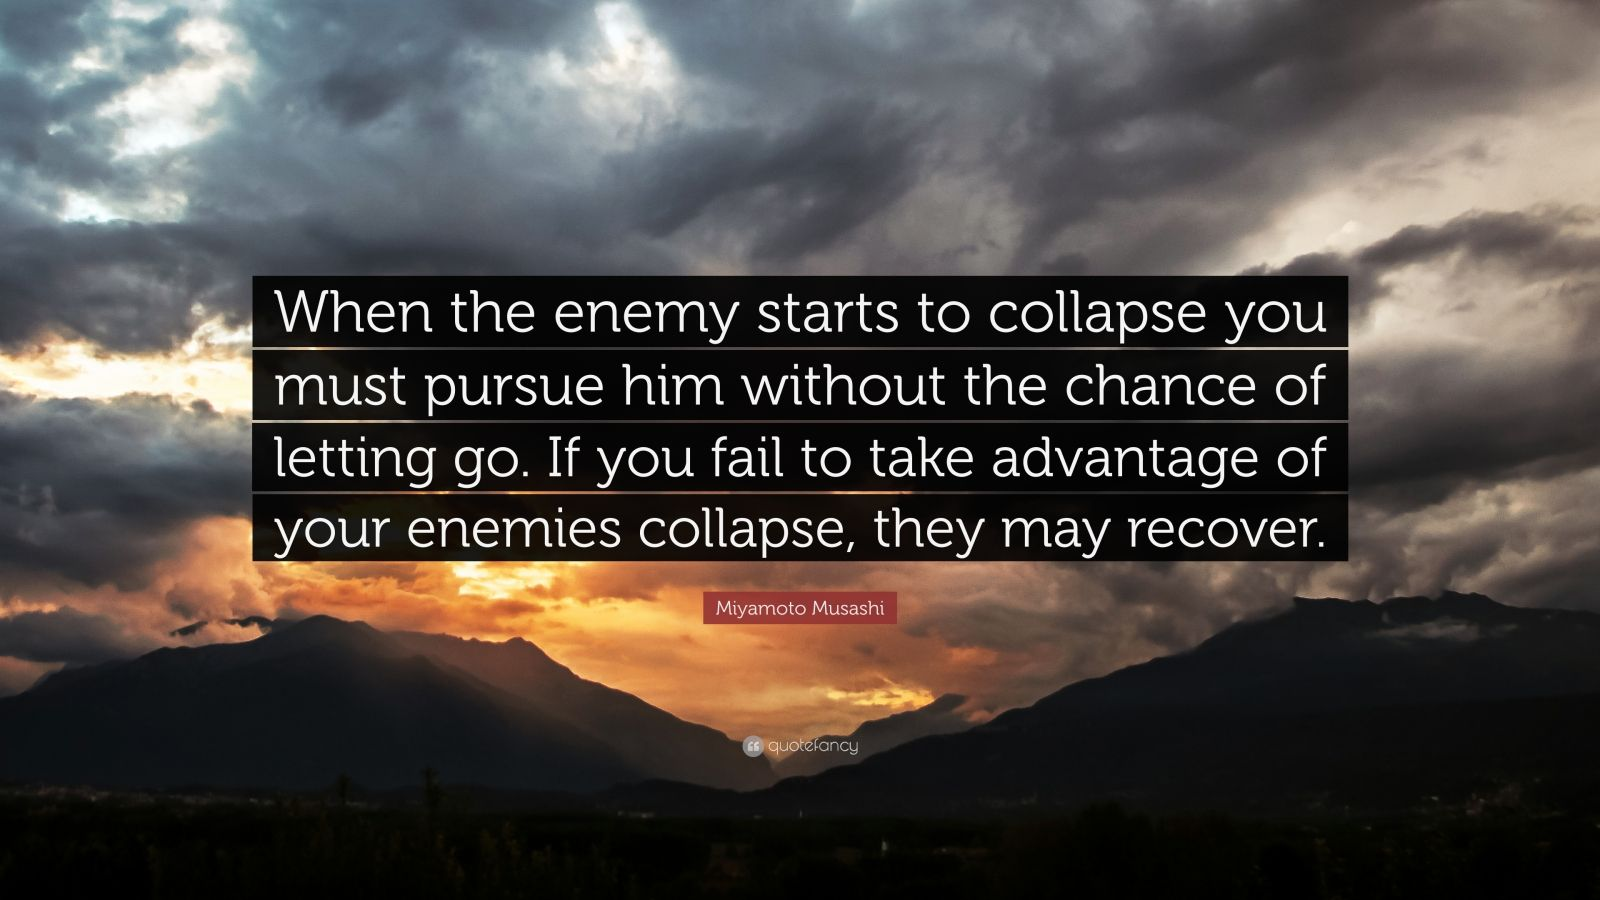 """Miyamoto Musashi Quote: """"When the enemy starts to collapse you must pursue him without the chance of letting go. If you fail to take advantage of your enemies collapse, they may recover."""""""